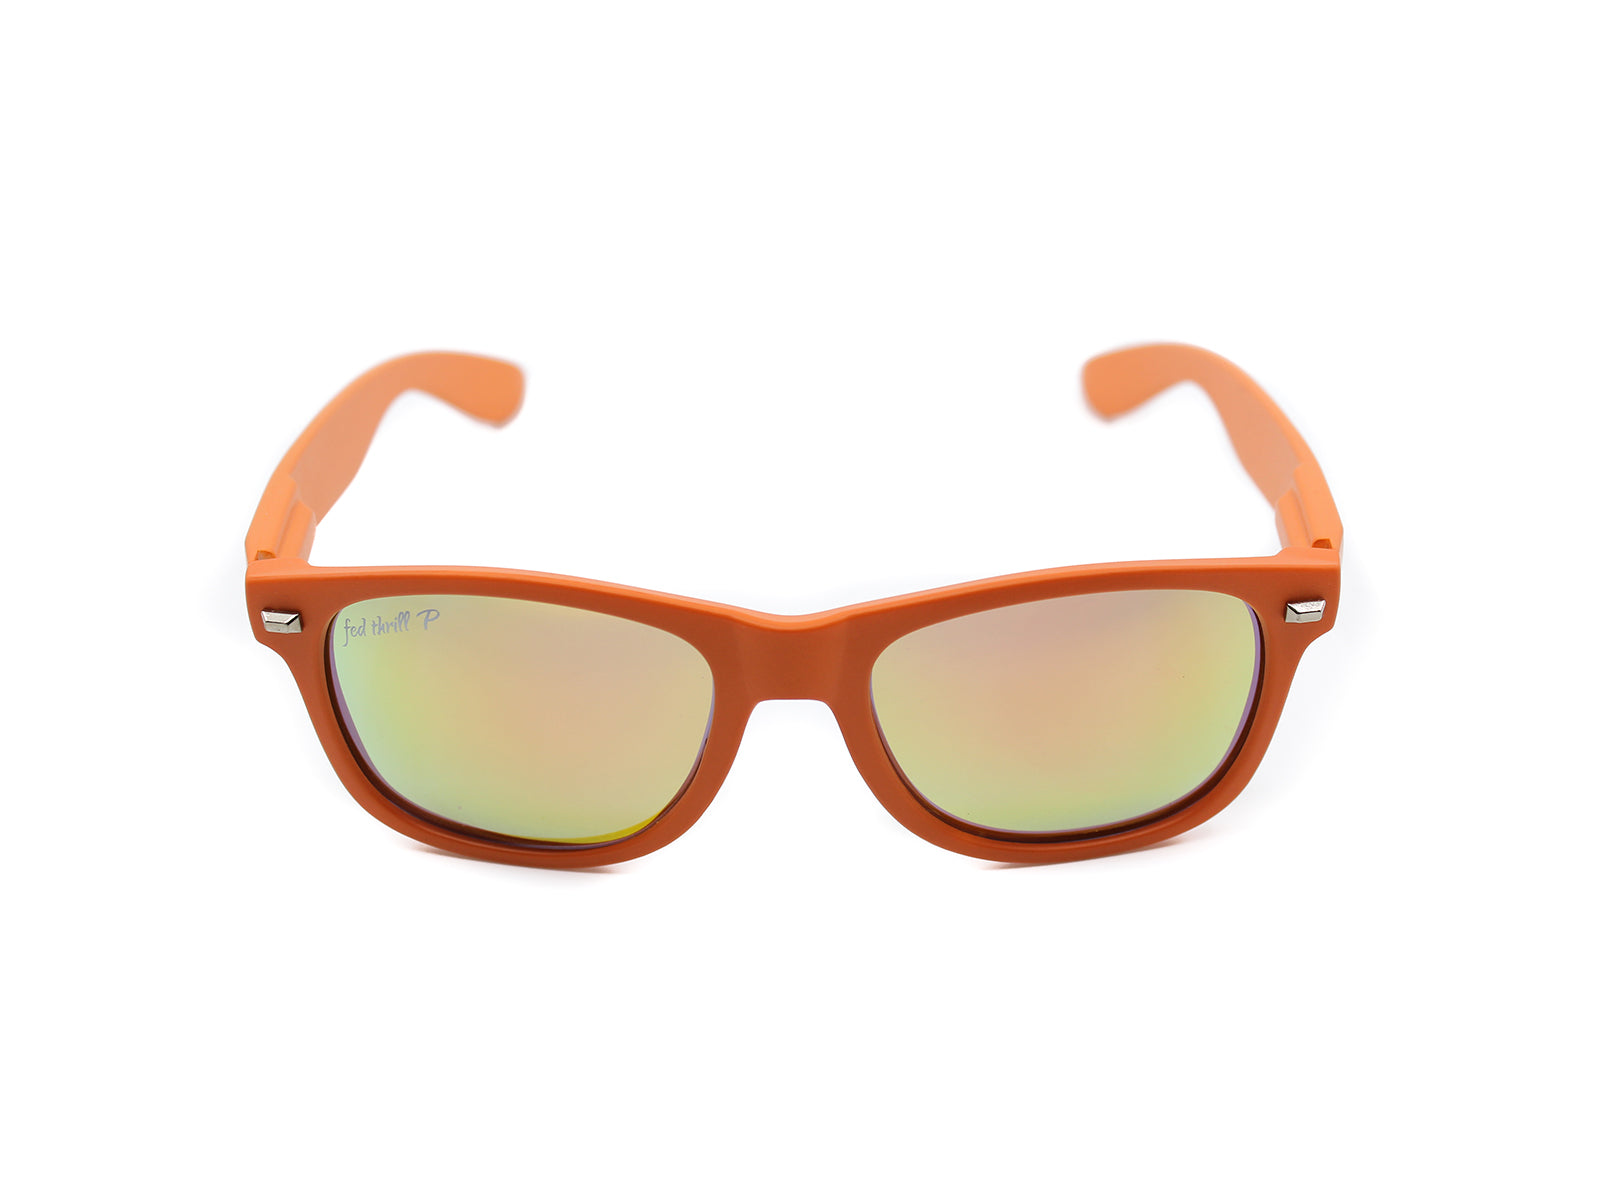 Fultons - Citrus: Matte Orange / Mirrored Orange Polarized